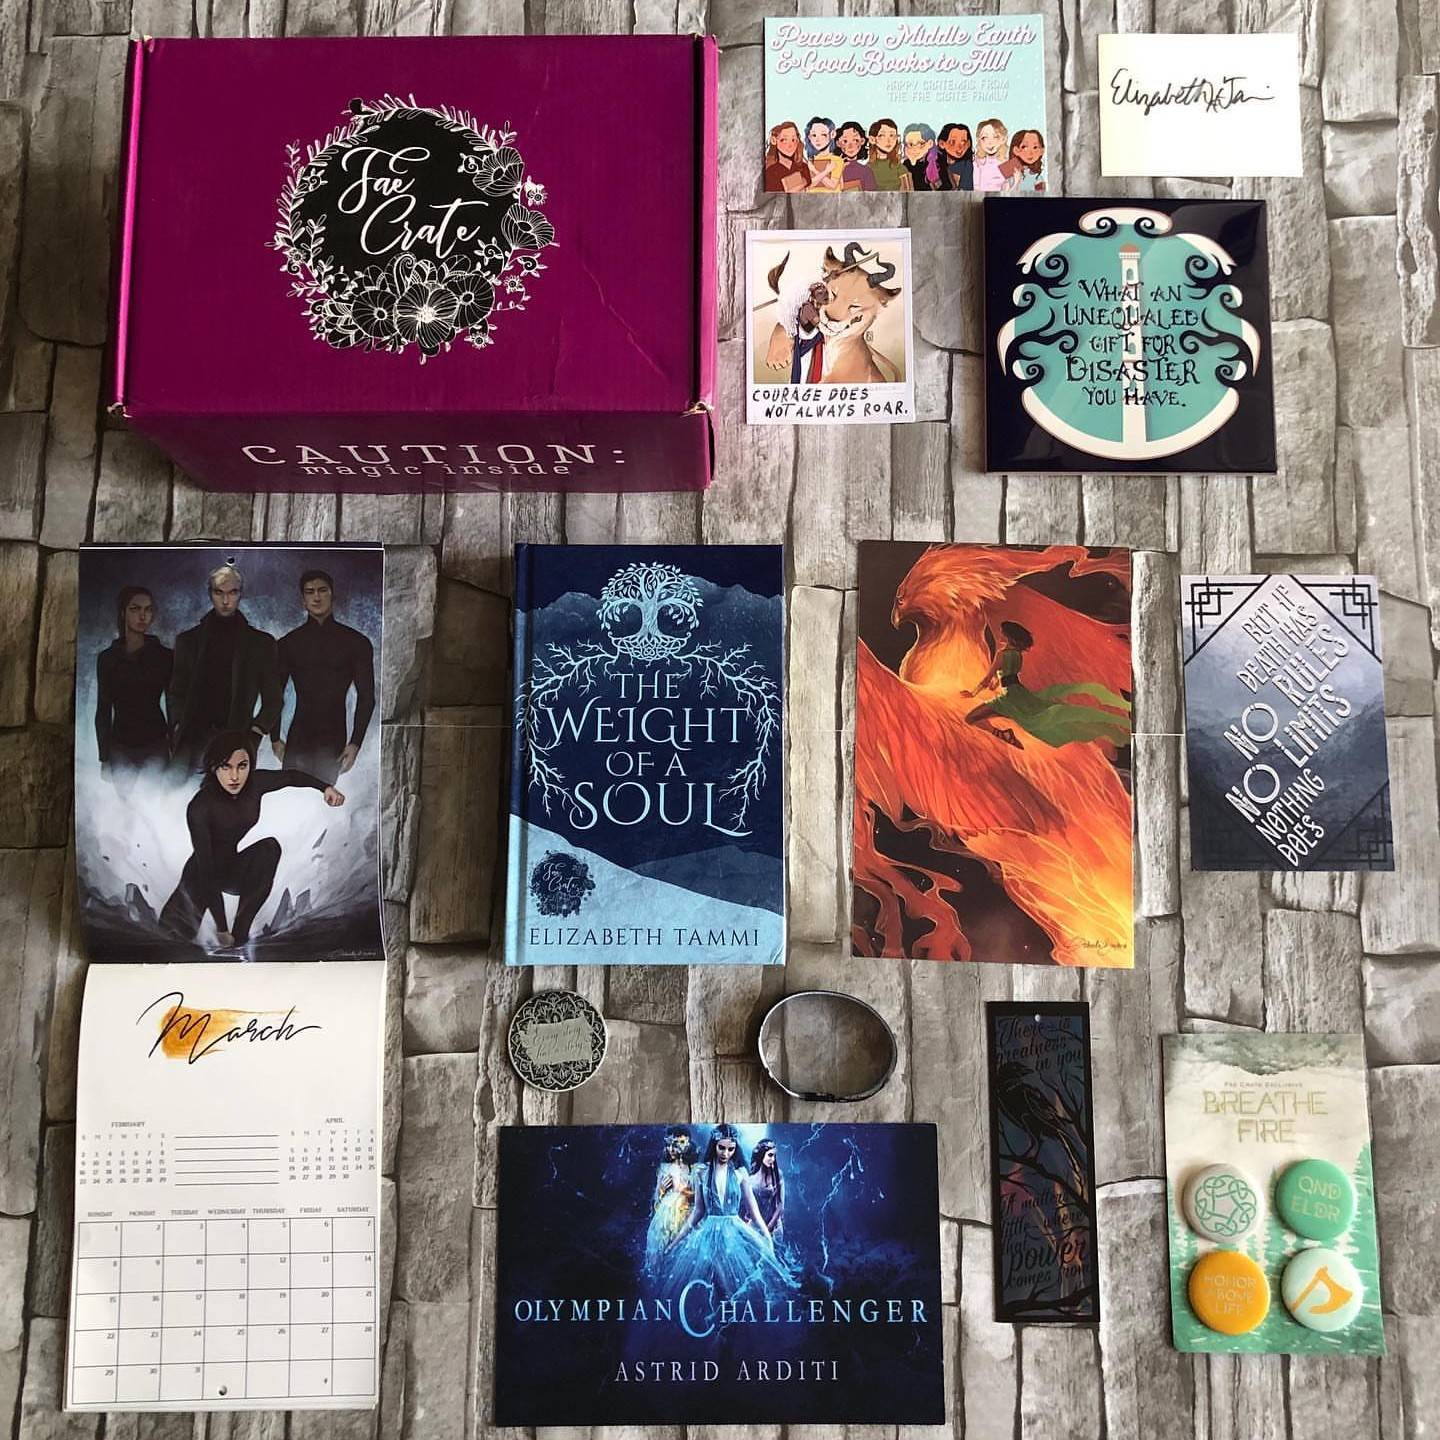 December 2019 Of Legends and Lore box theme included The Weight of a Soul by Elizabeth Tammi, Breathe Fire Button Set, Beyond a Darkened Shore Metallic Bookmark, 2020 Calendar, Uprooted Ceramic Trivet/Coaster, Stormdancer Wristband, The Wrath and the Down Collectors Coin, Crown of Feathers Theme Art, E-Book Download of Olympic Challenger by Astrid Arditi, Children of Blood and Bond Polaroid, and We Hunt the Flames Sweatshirt for Seelie and Solitary boxes only.